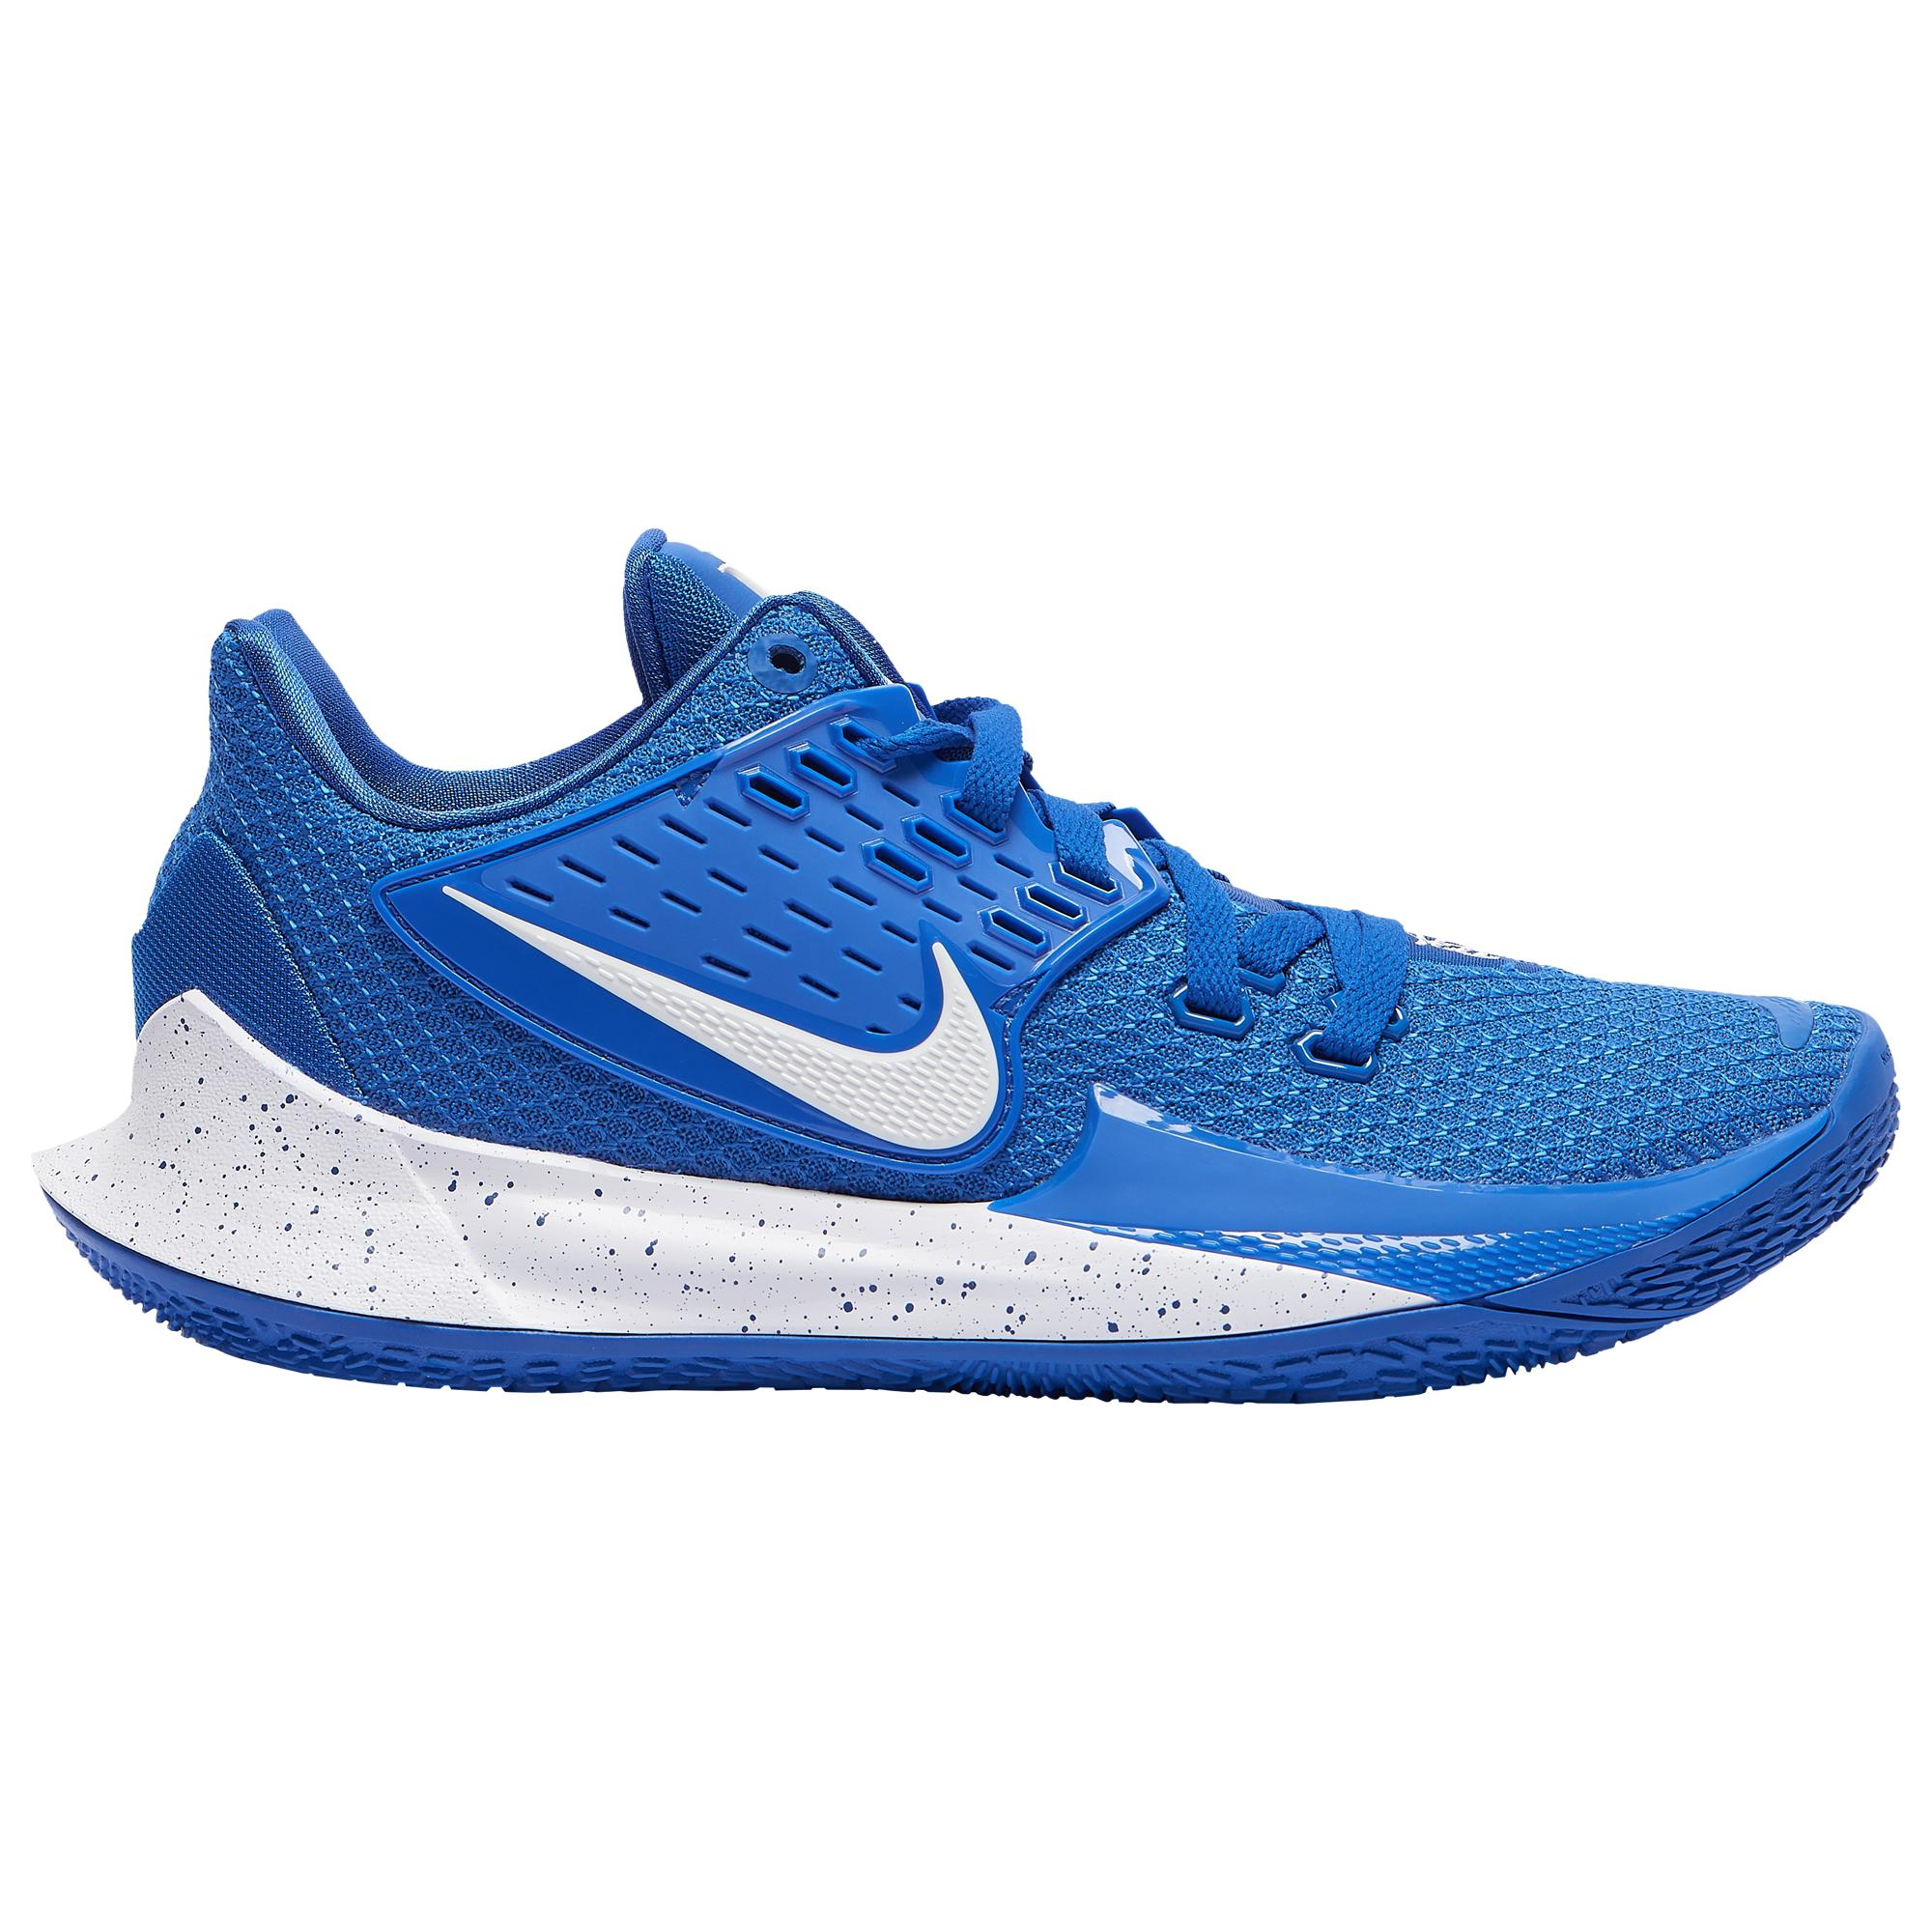 Nike Kyrie Low 2 in Blue for Men - Save